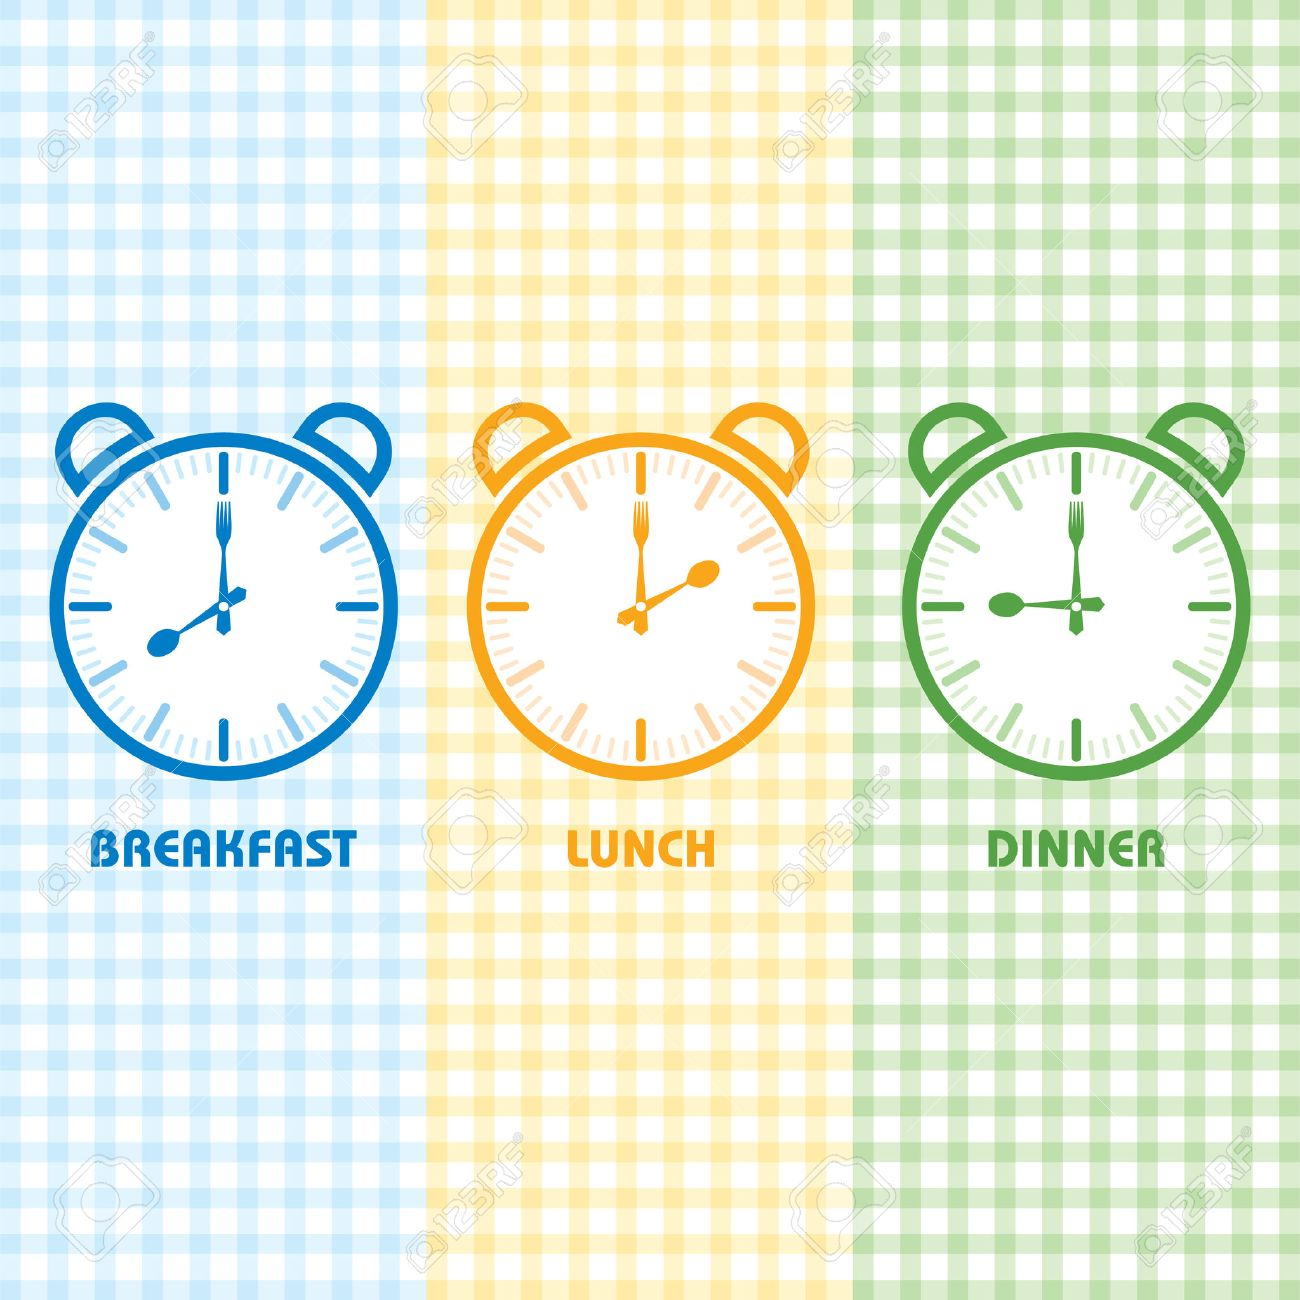 Breakfast Lunch and Dinner time stock vector - 36844107